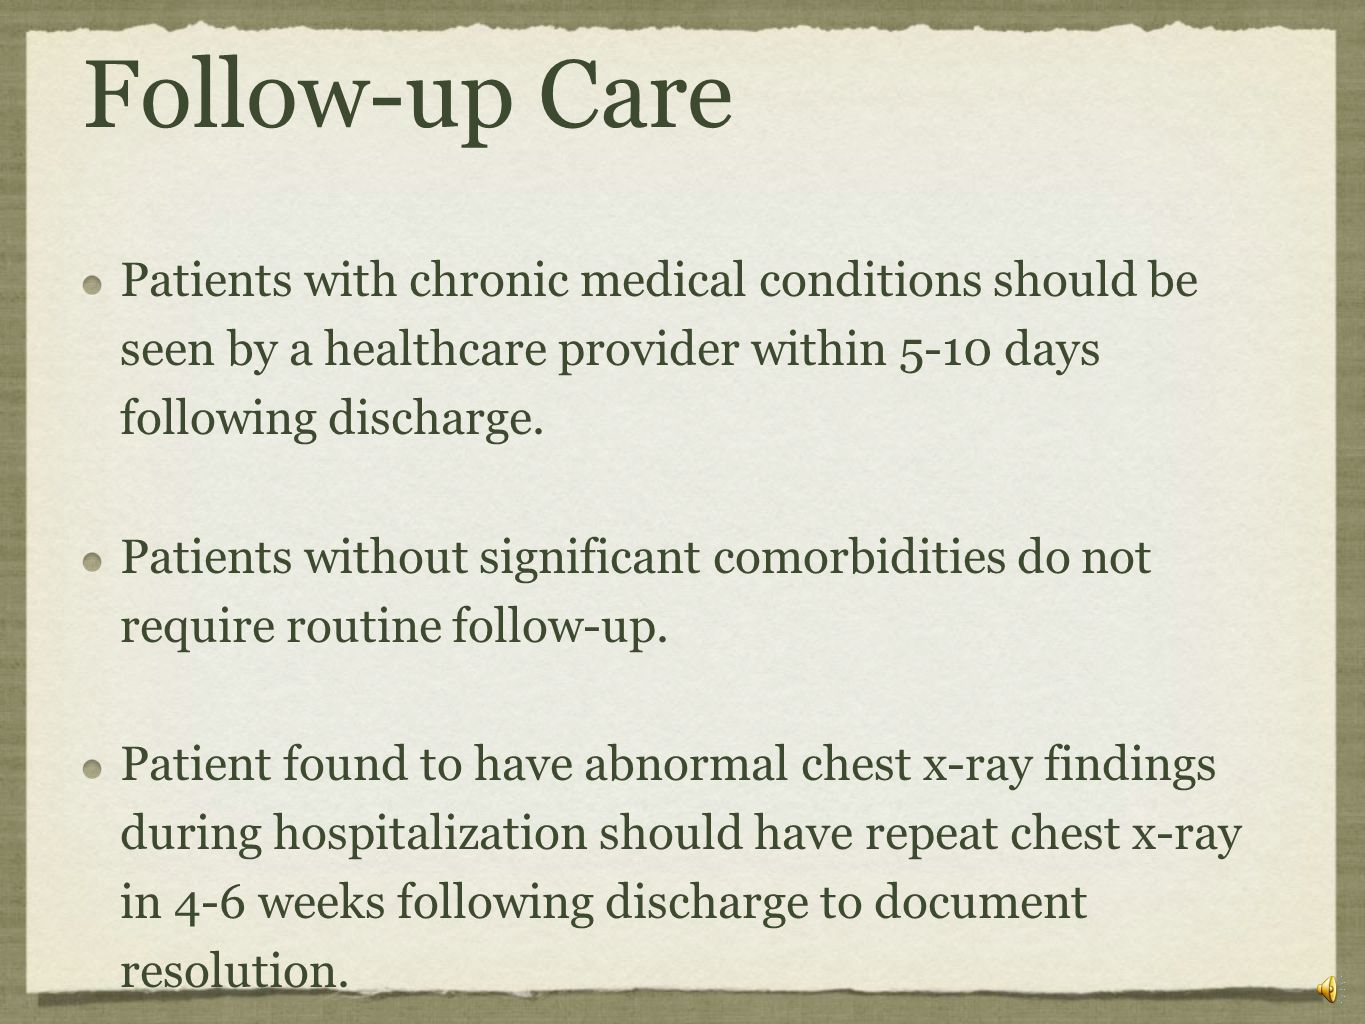 Follow-up Care Patients with chronic medical conditions should be seen by a healthcare provider within 5-10 days following discharge.